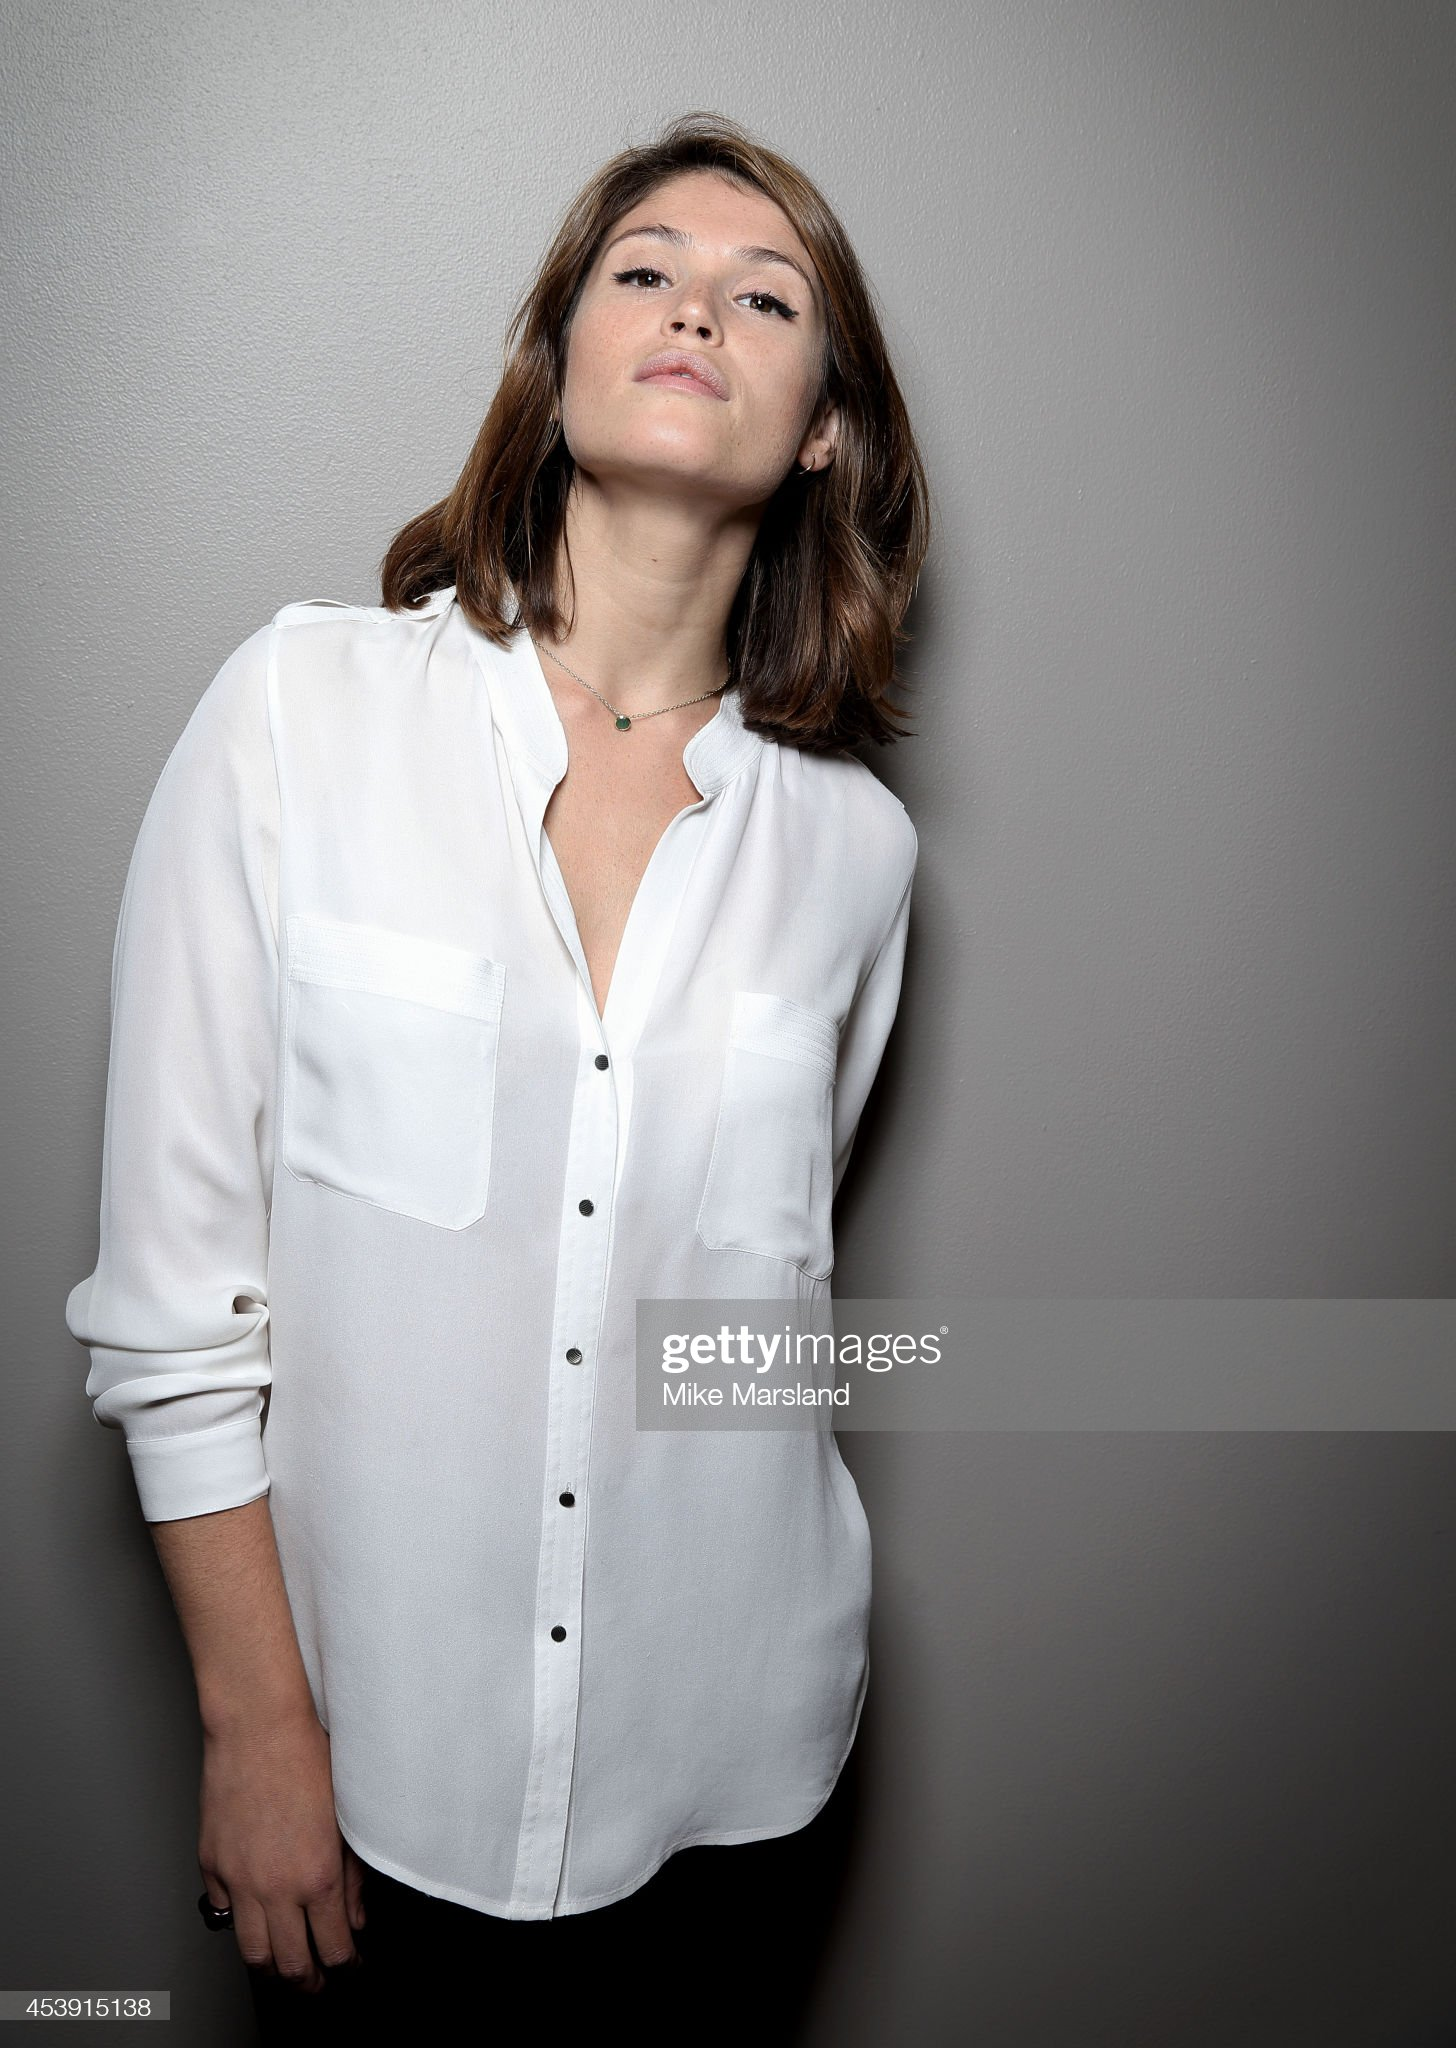 actress-gemma-arterton-is-photographed-at-the-bfi-southbank-the-film-picture-id453915138